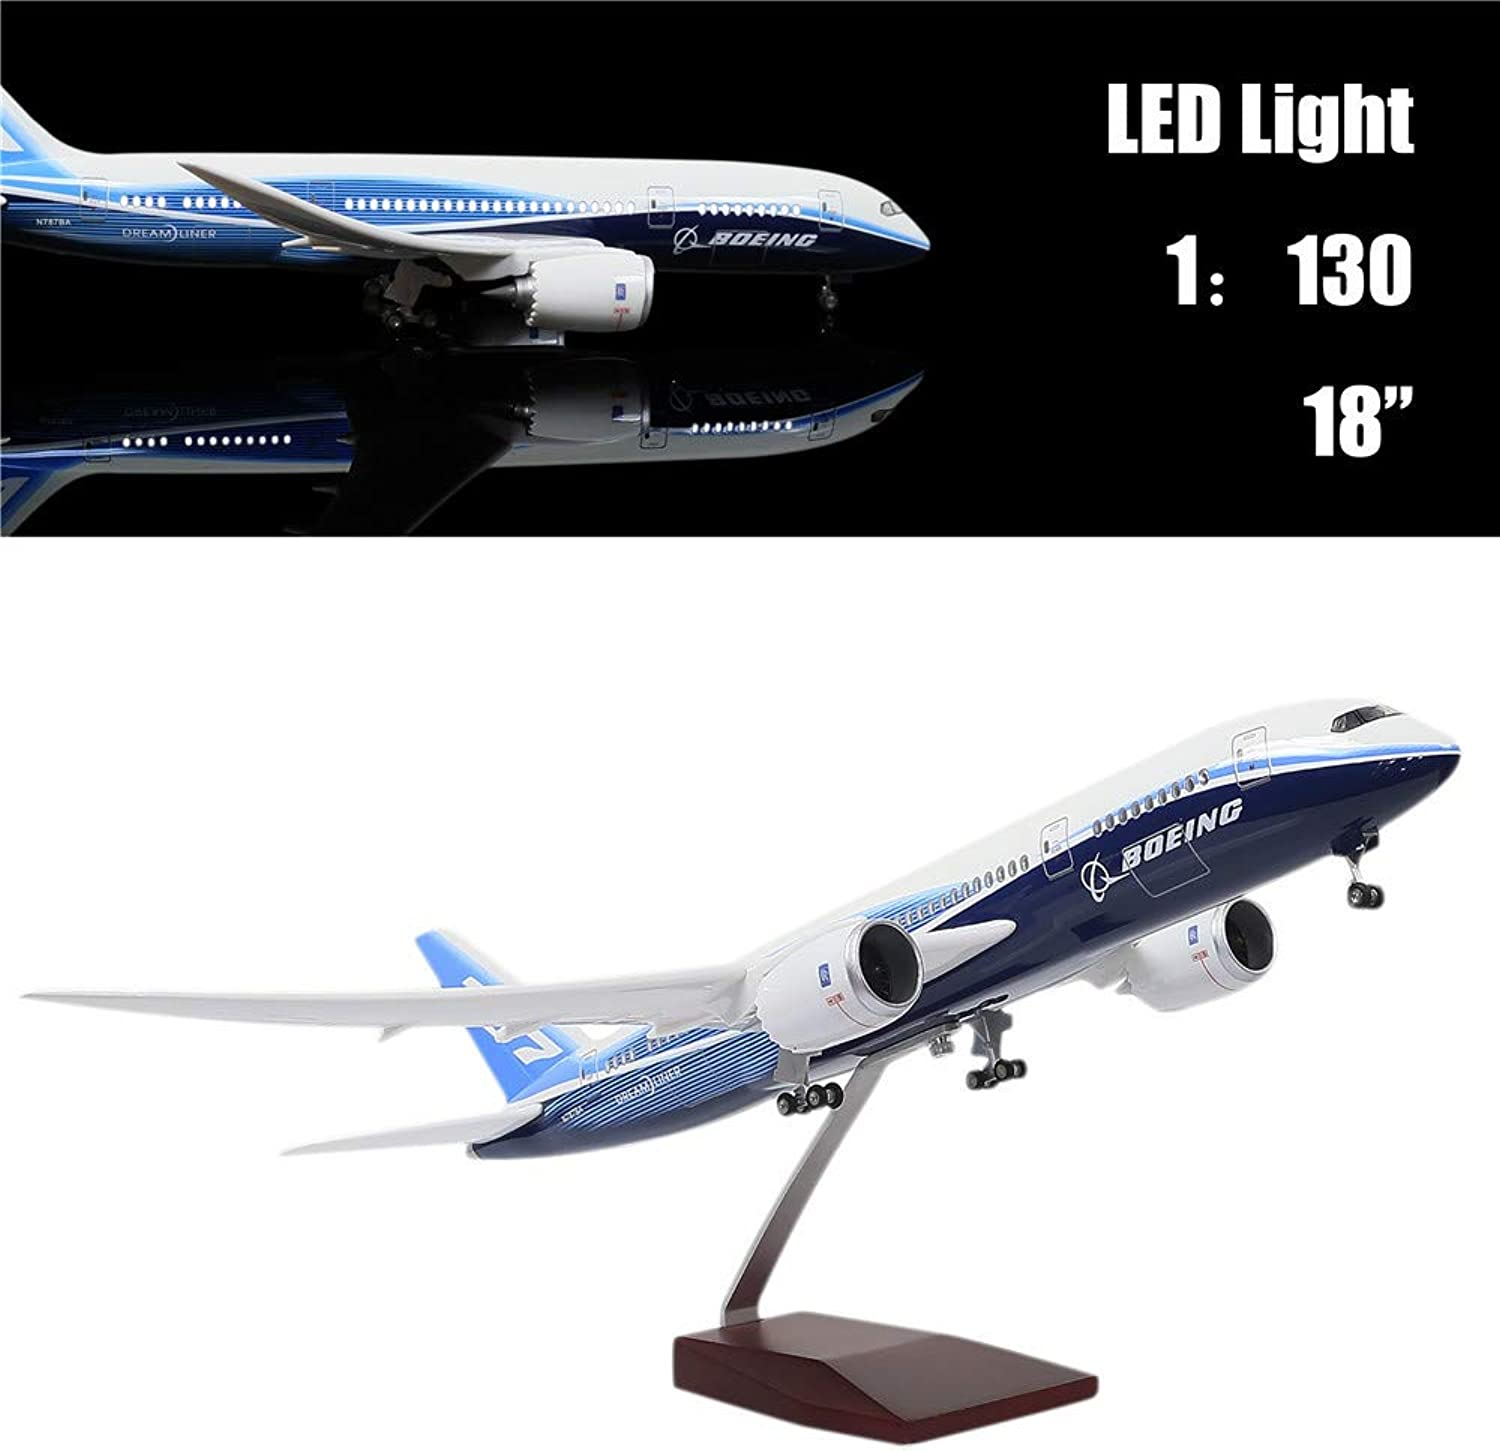 "24-Hours 18"" 1 130 Scale Model Jet Boeing 787 Aircraft Model Kits Display Diecast Airplane for Adults with LED Light(Touch or Sound Control)"